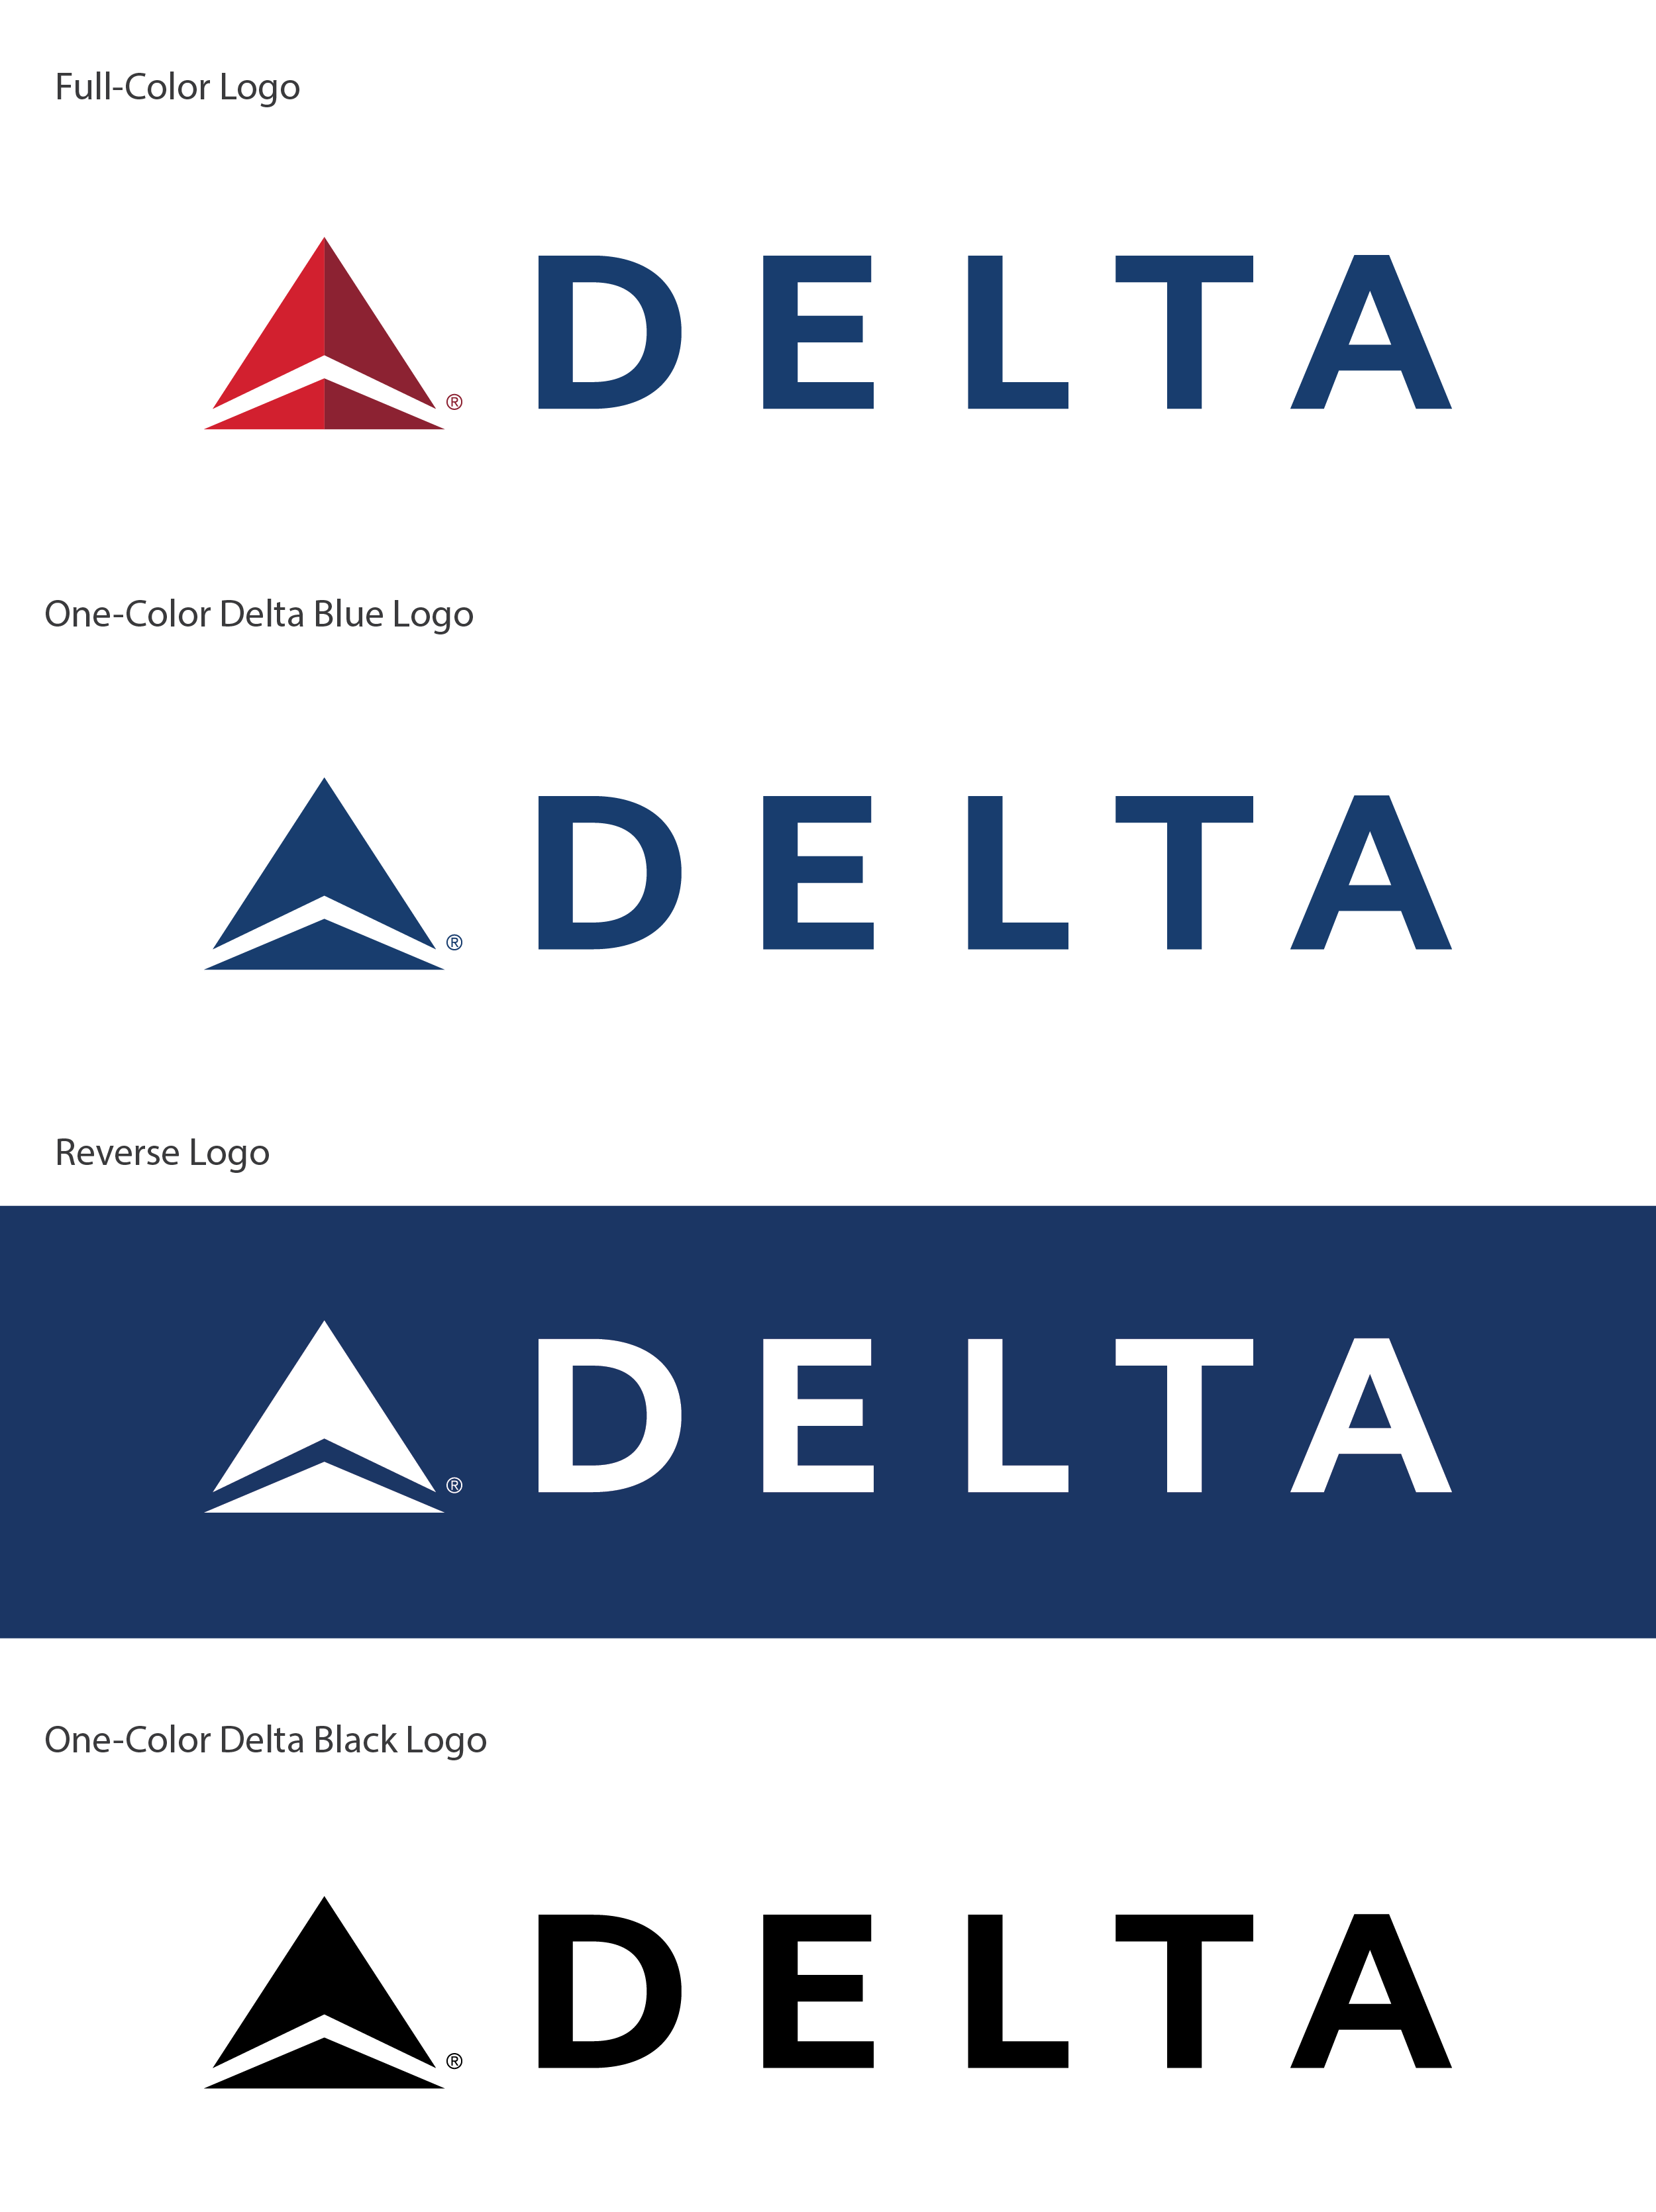 Delta logo color variations